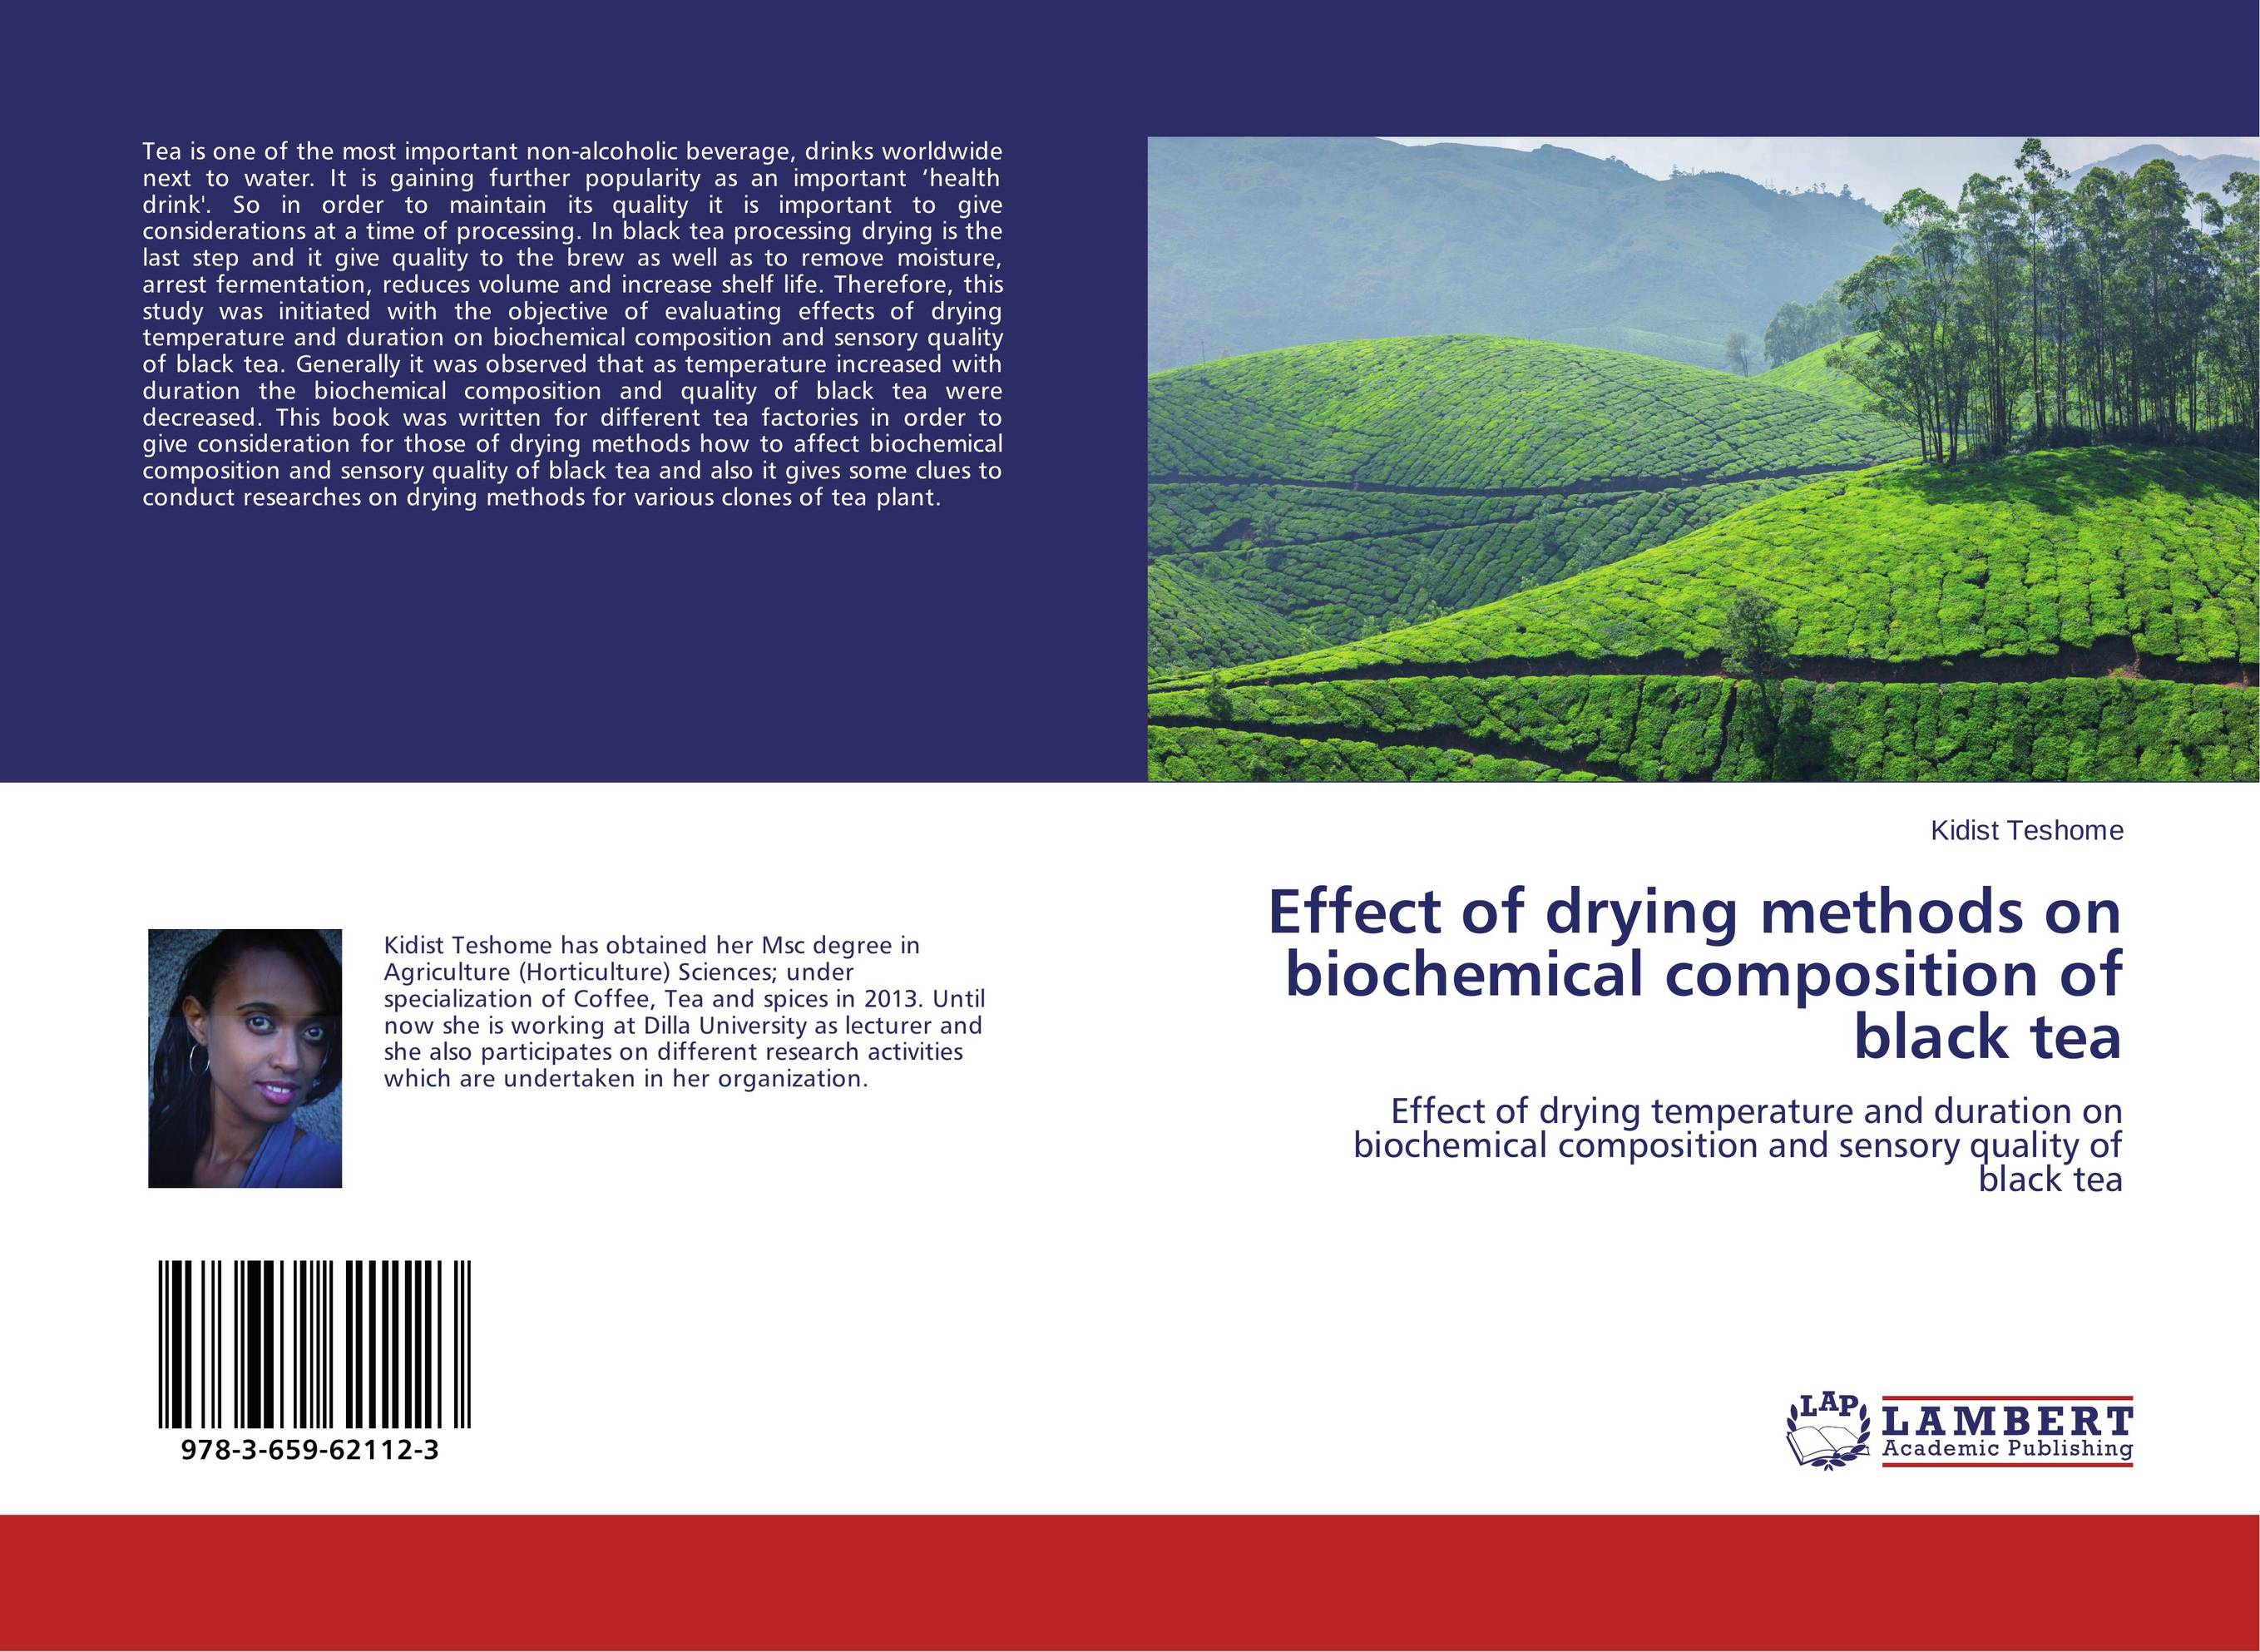 Effect of drying methods on biochemical composition of black tea effect of drying methods on biochemical composition of black tea